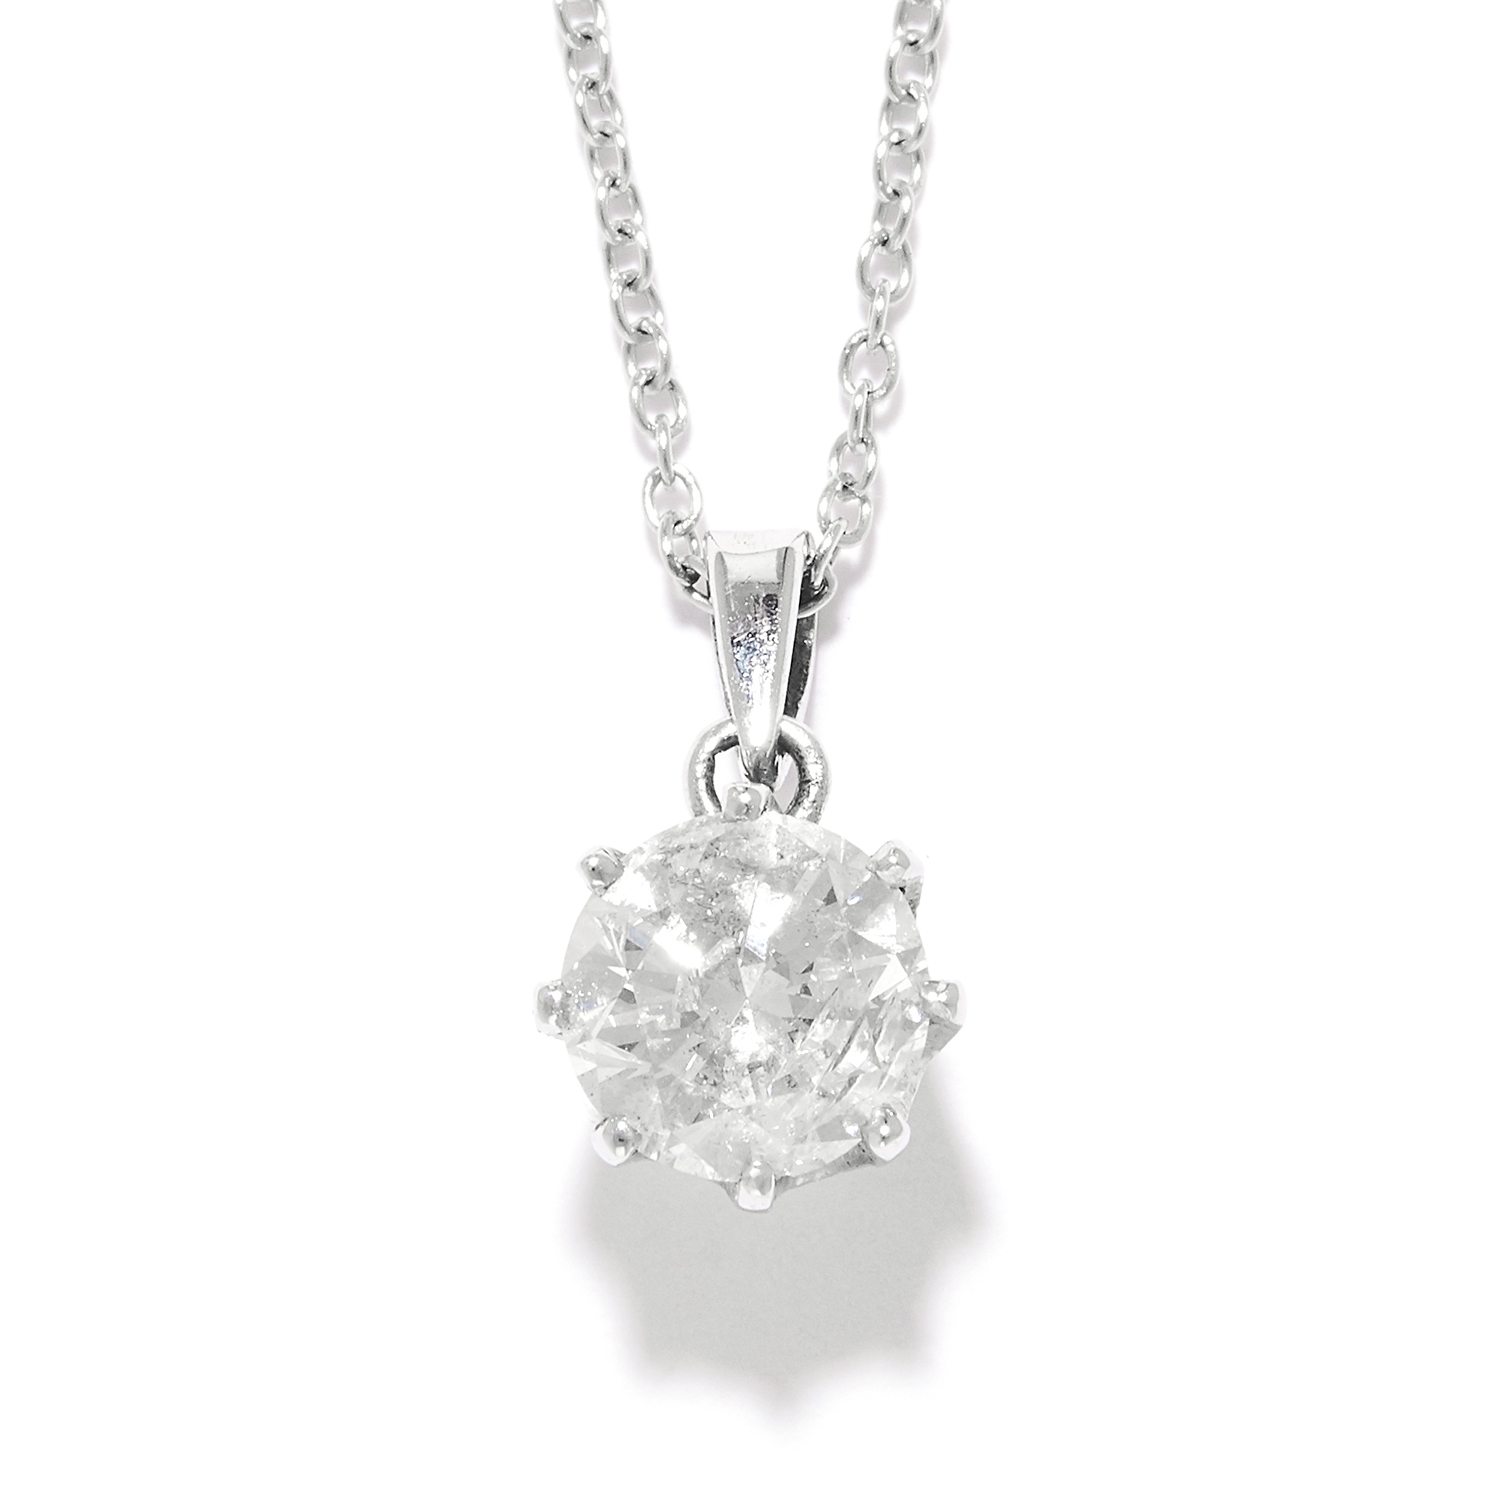 0.94 CARAT SOLITAIRE DIAMOND PENDANT in 18ct white gold, set with a single round brilliant cut